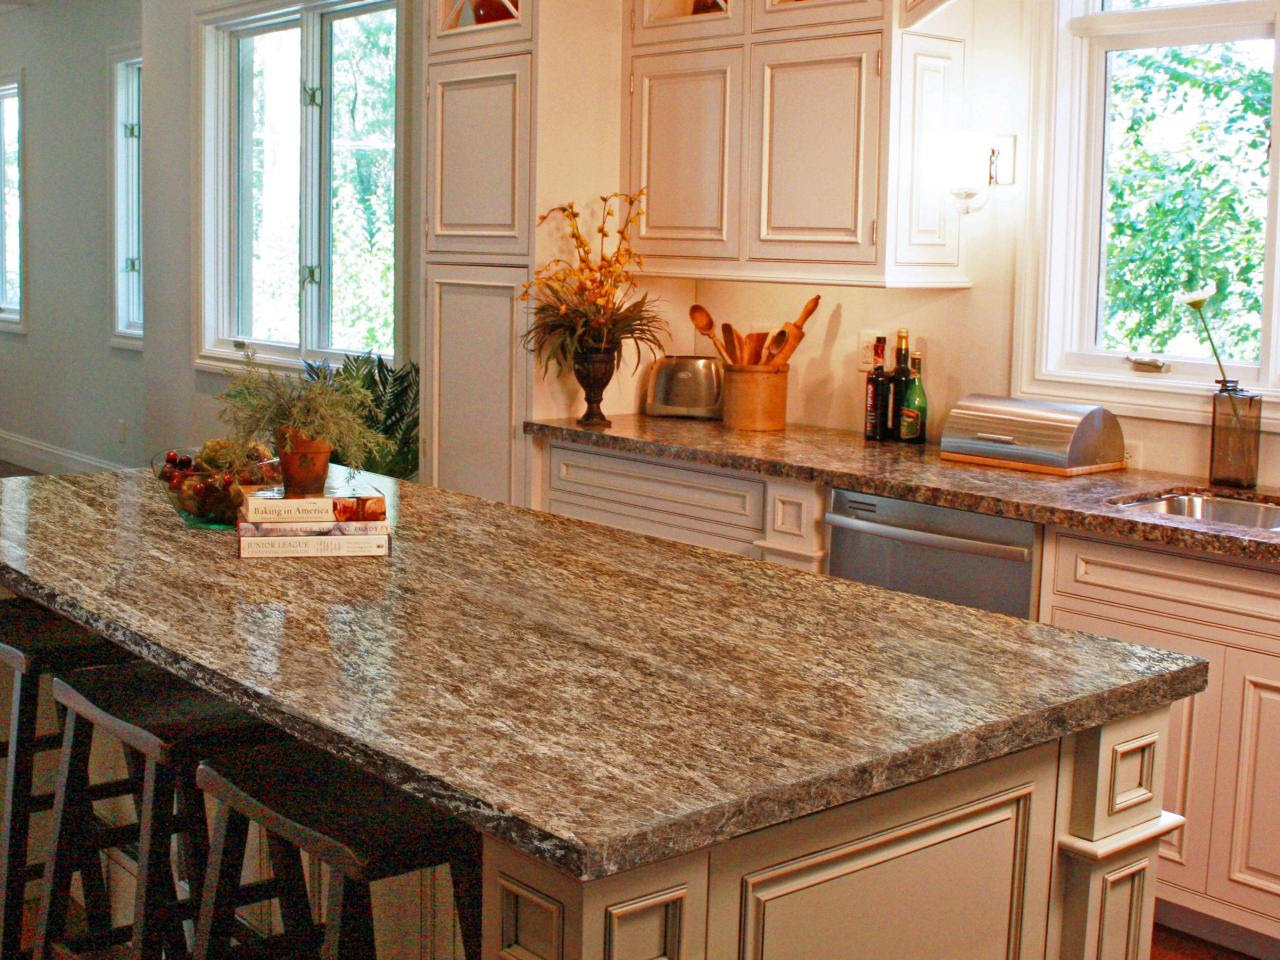 How To Paint Laminate Kitchen Countertops Diy Within Can You Spray